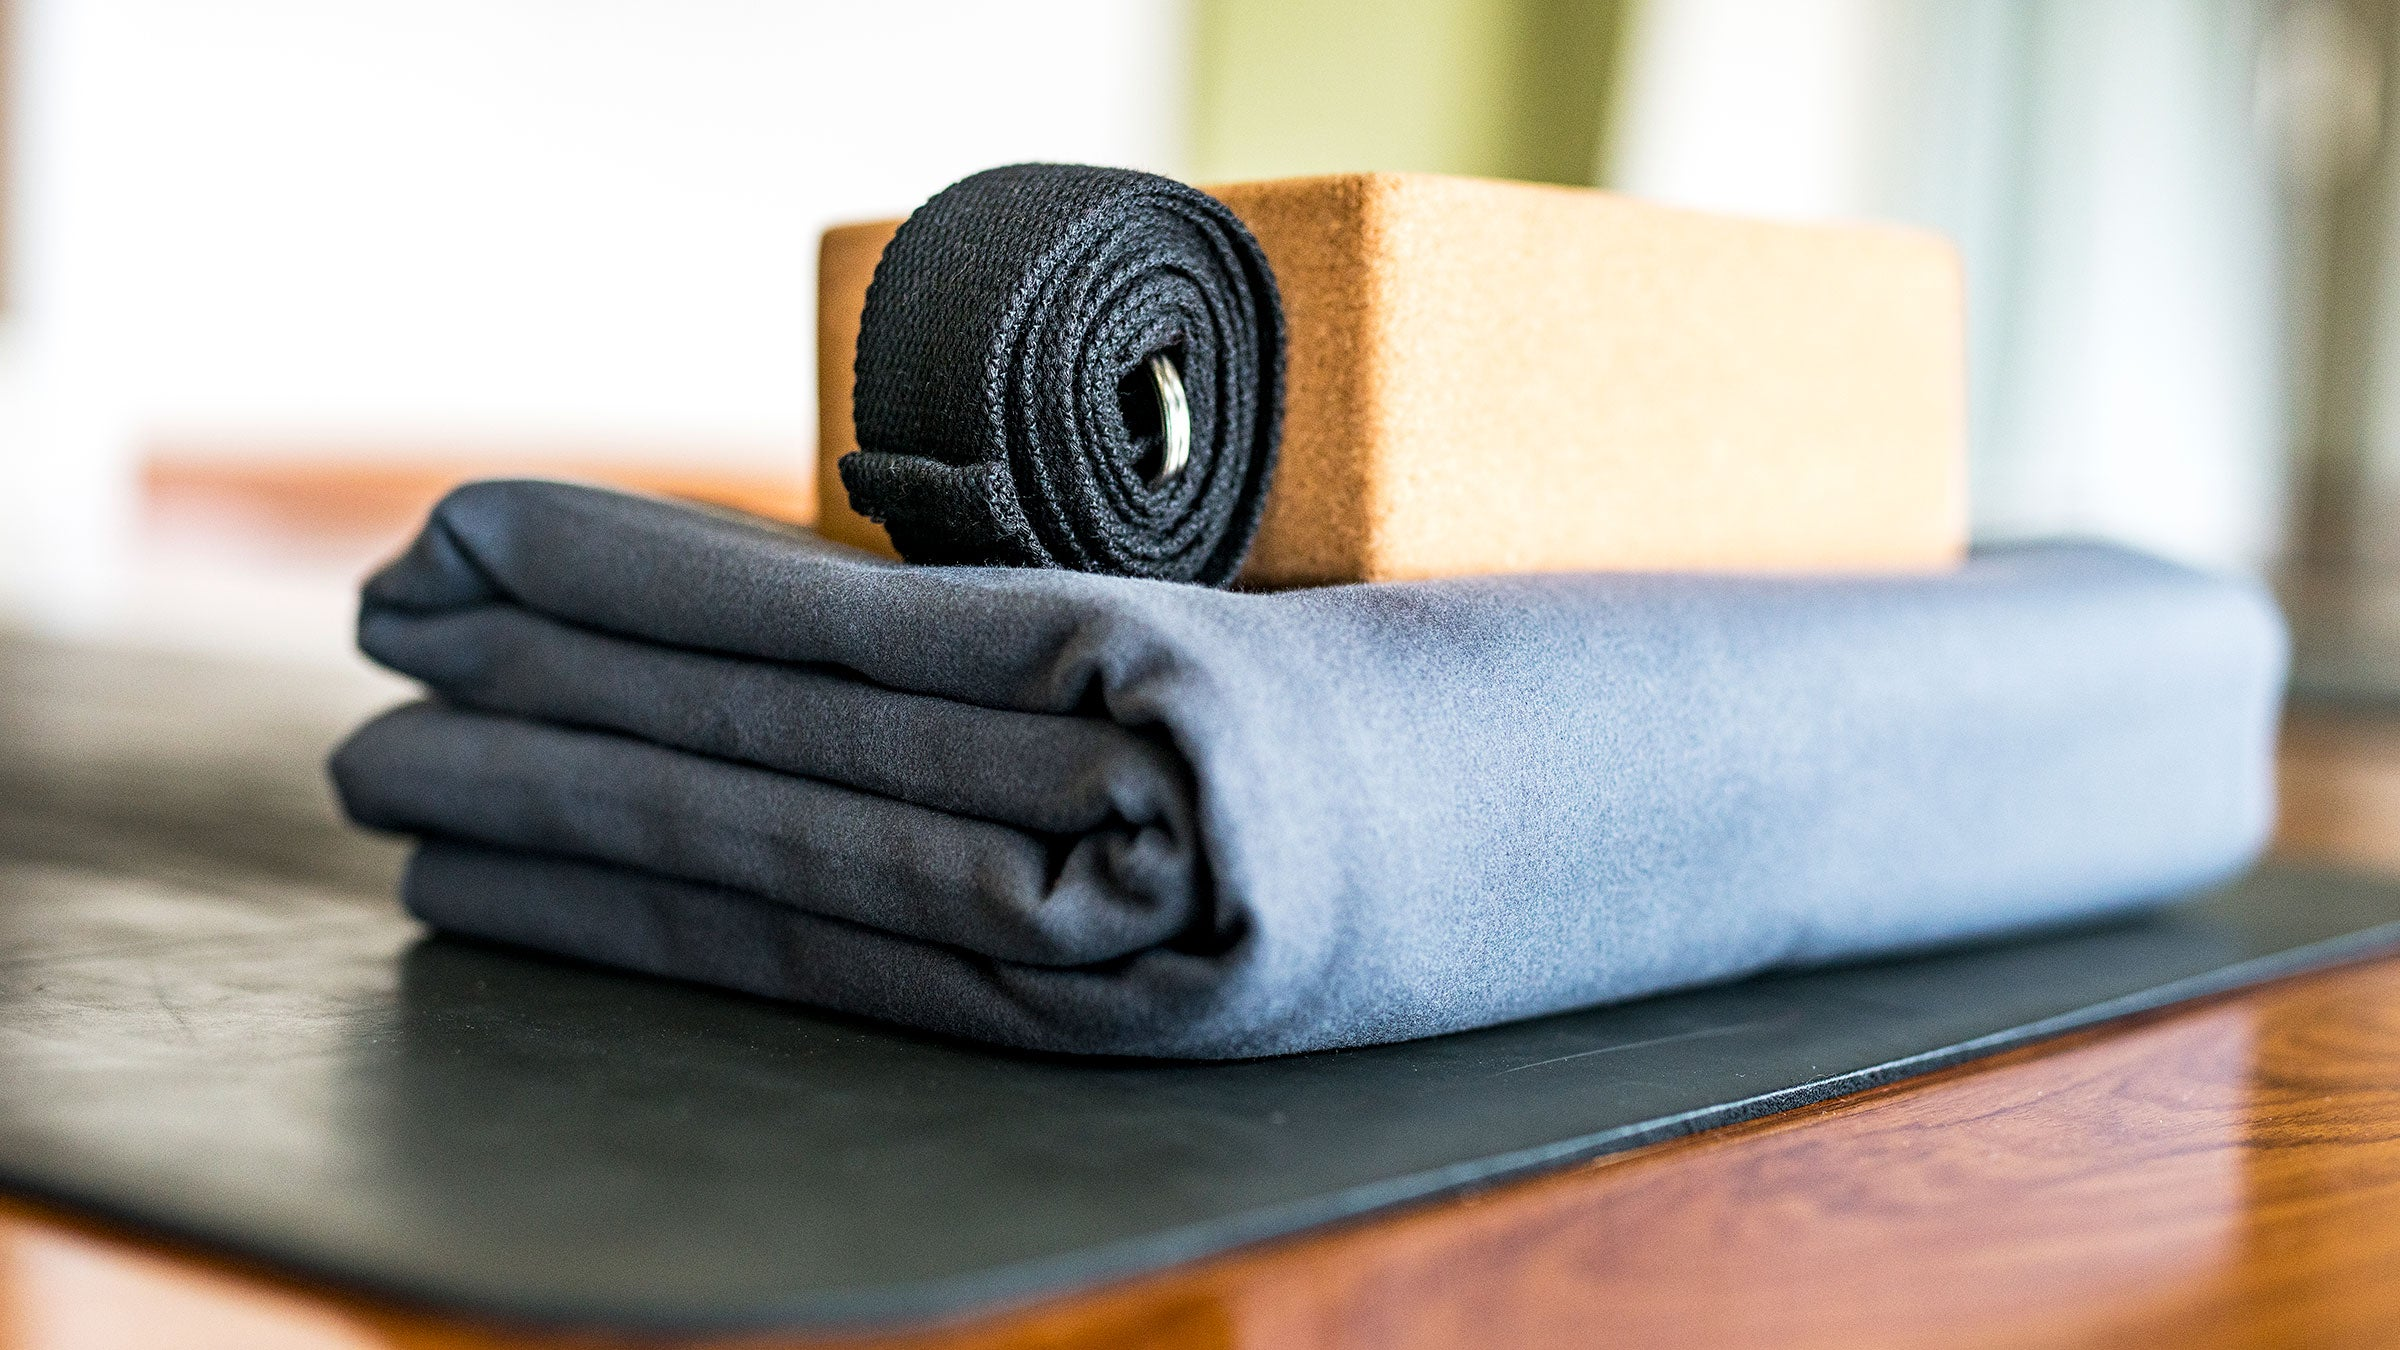 A yoga mat, block, strap, and blanket are pictured in a studio